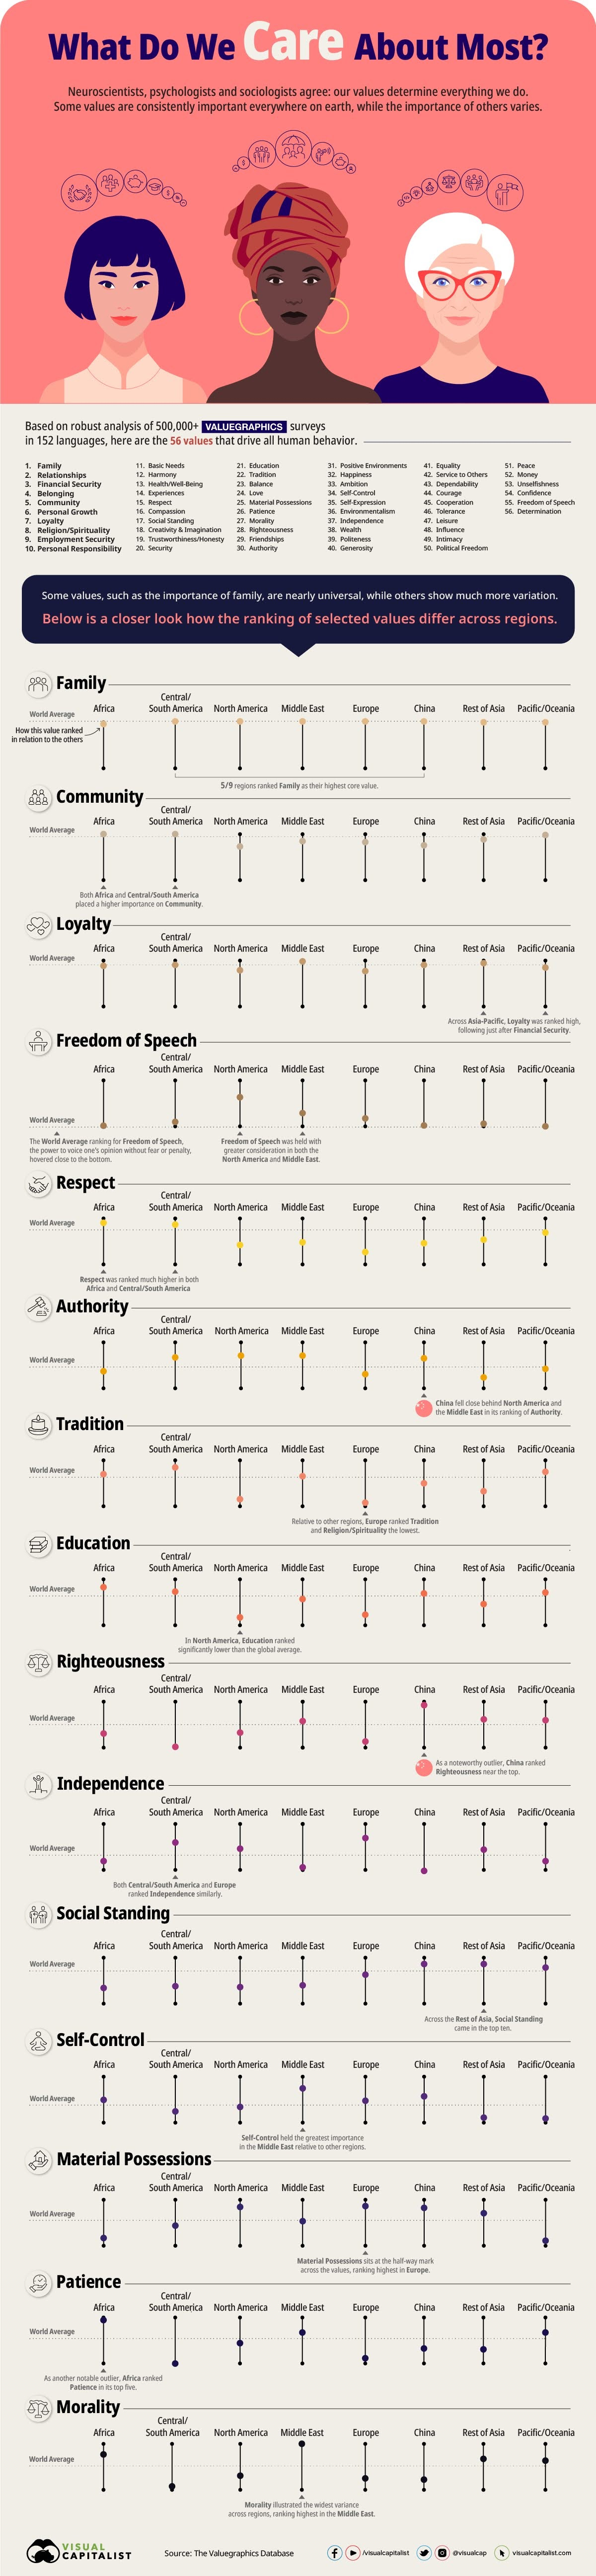 the-worlds-most-influential-values-in-one-graphic-infographic